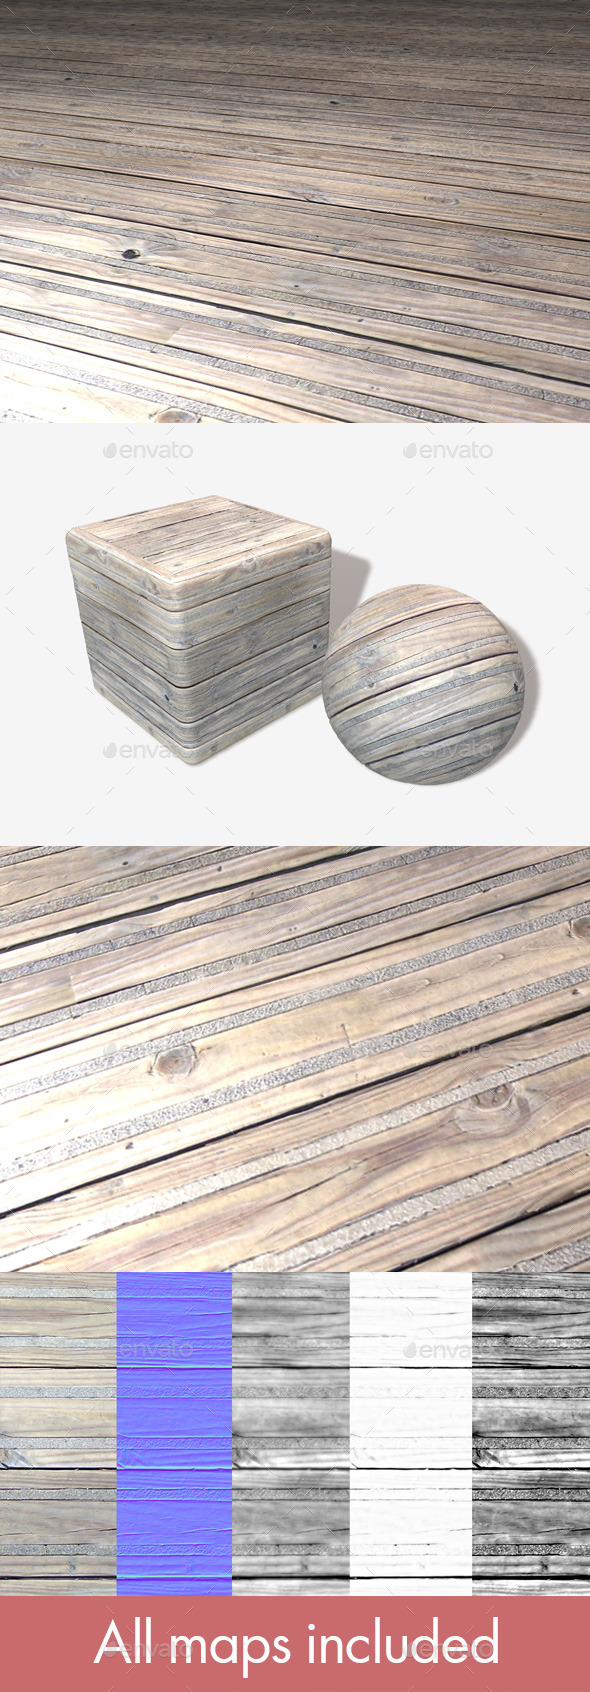 3DOcean Wooden Floor Grip Panels Seamless Texture 11241991